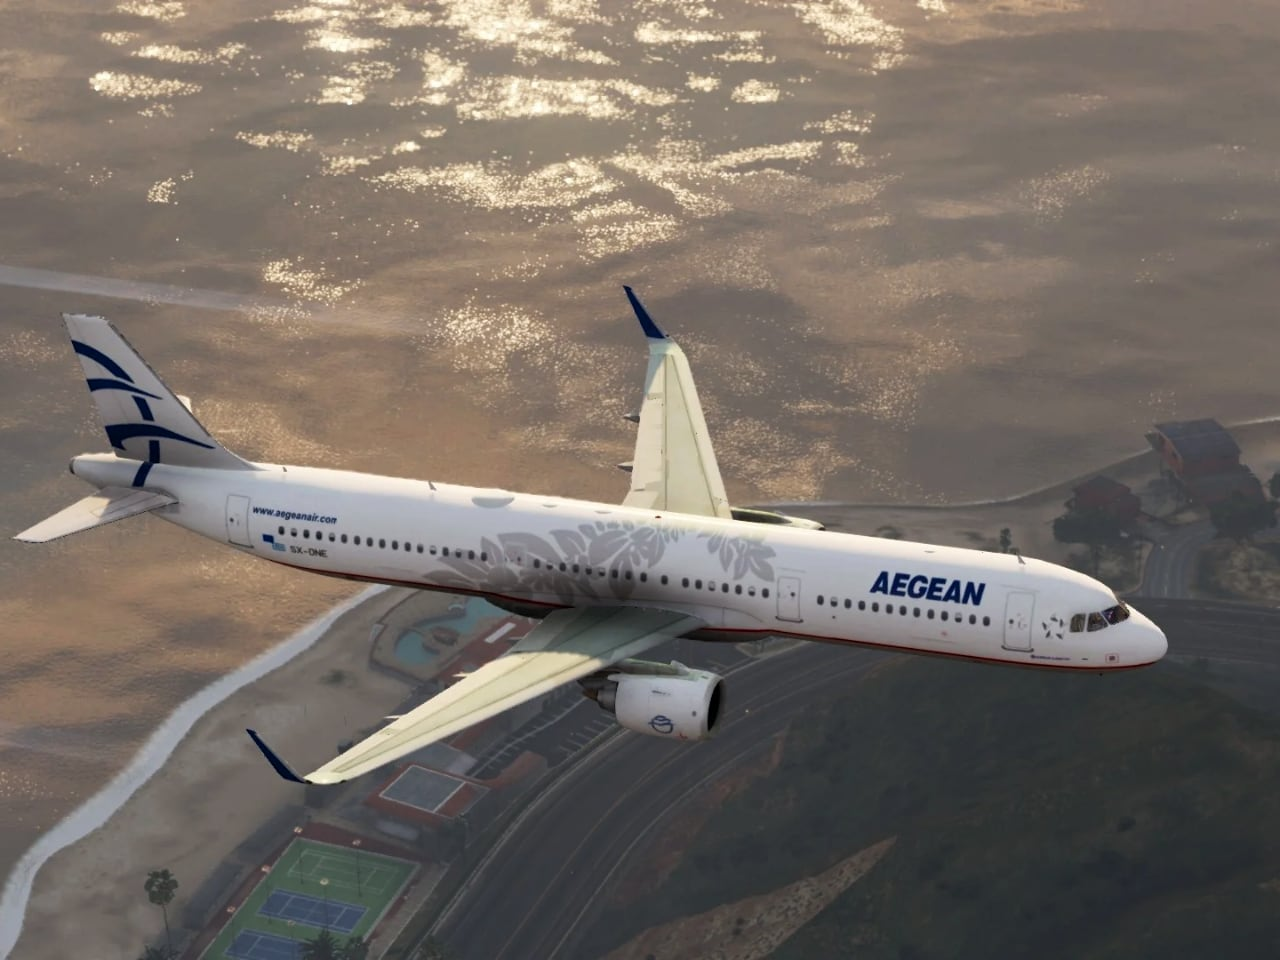 A321neo_The_Larger,_Greener_Aircrafts_Will_Offer_Aegean_Airlines_An_Additional_Competitive_Advantage